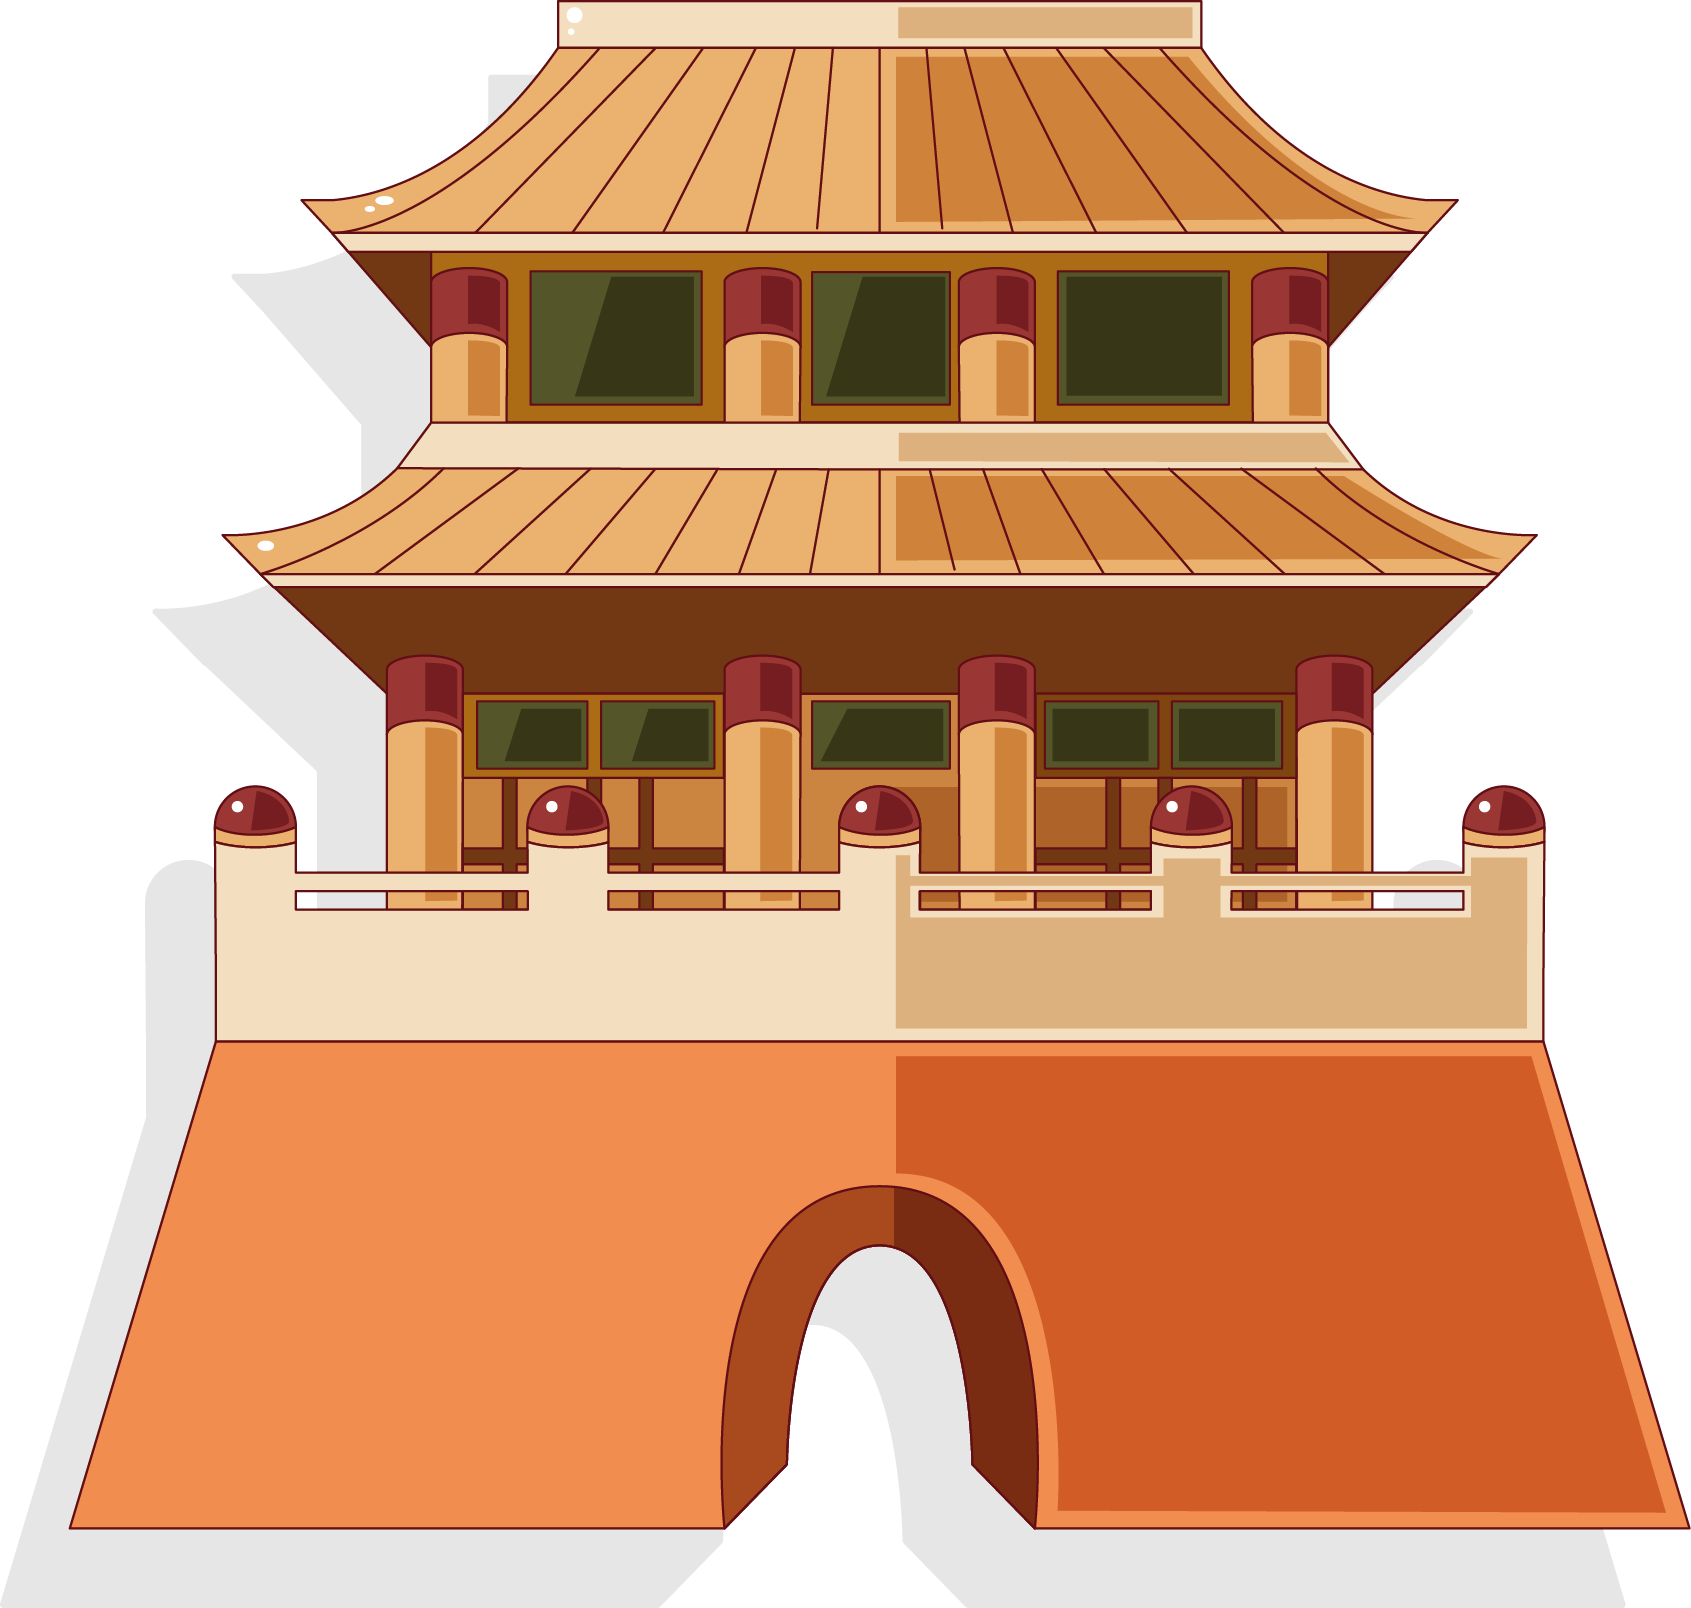 Palace clipart old palace. China building architecture illustration